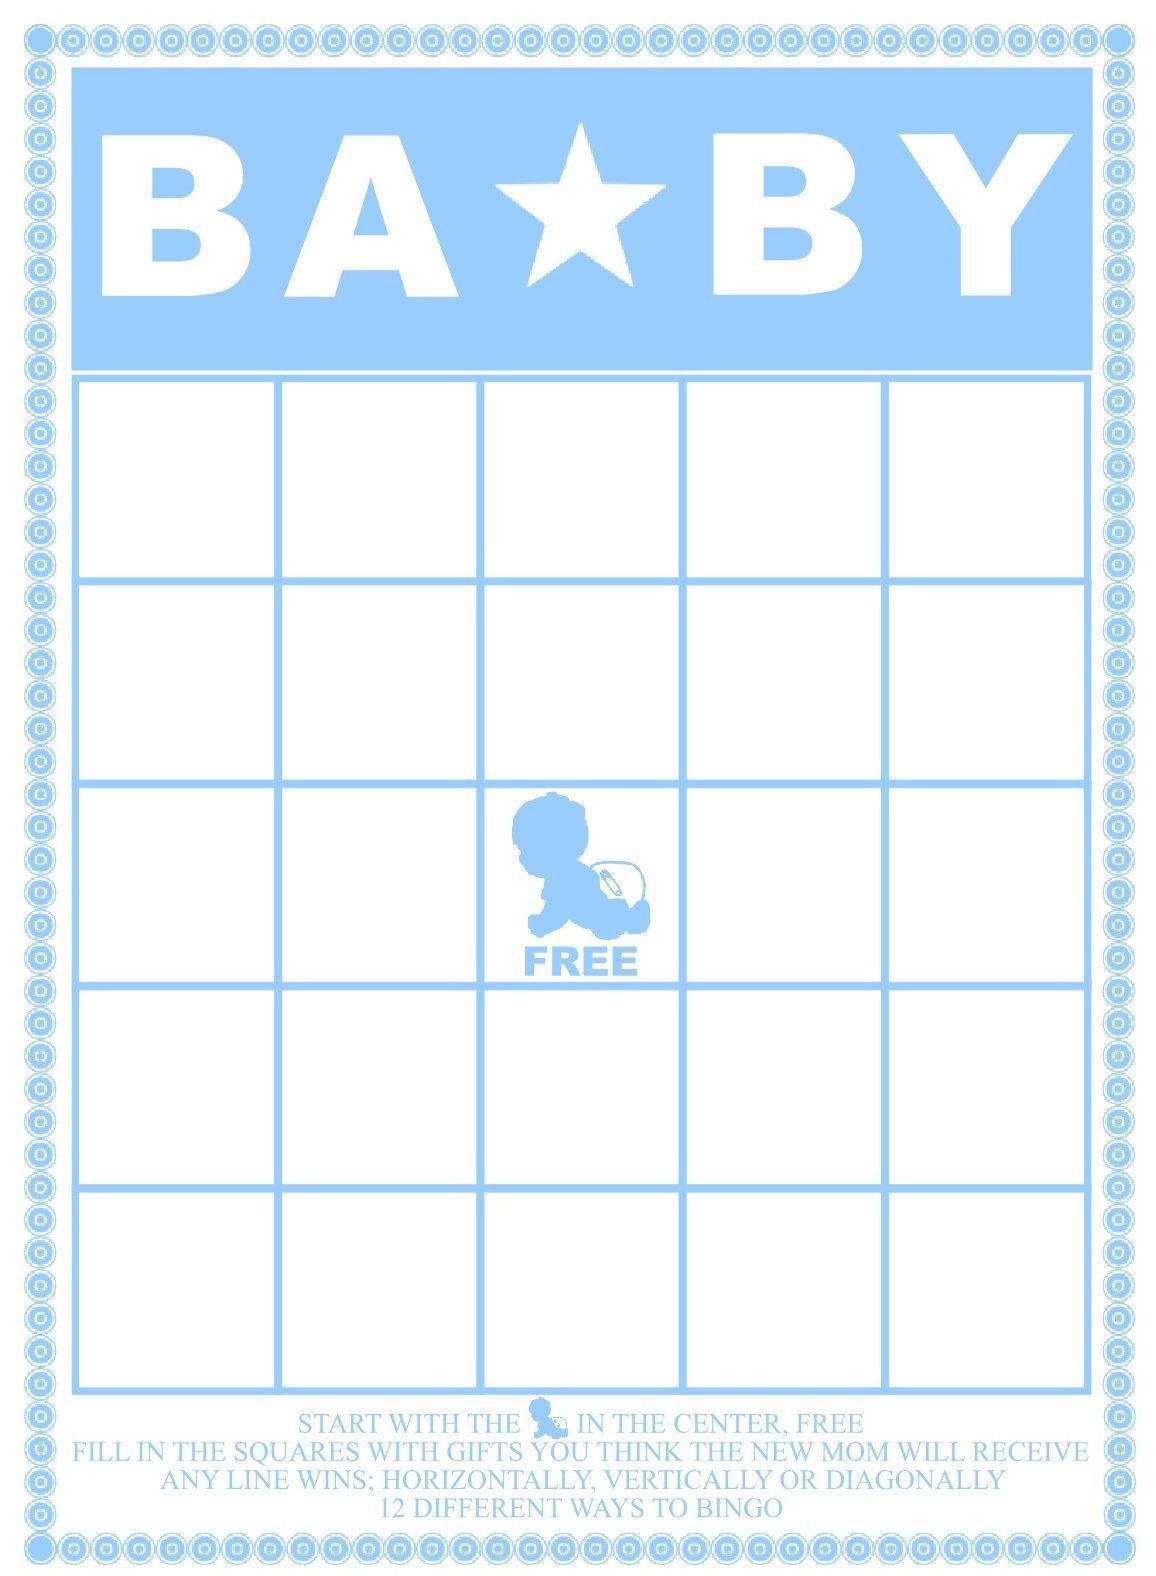 29 Sets Of Free Baby Shower Bingo Cards Pertaining To Baby Bingo - Baby Shower Bingo Template Free Printable